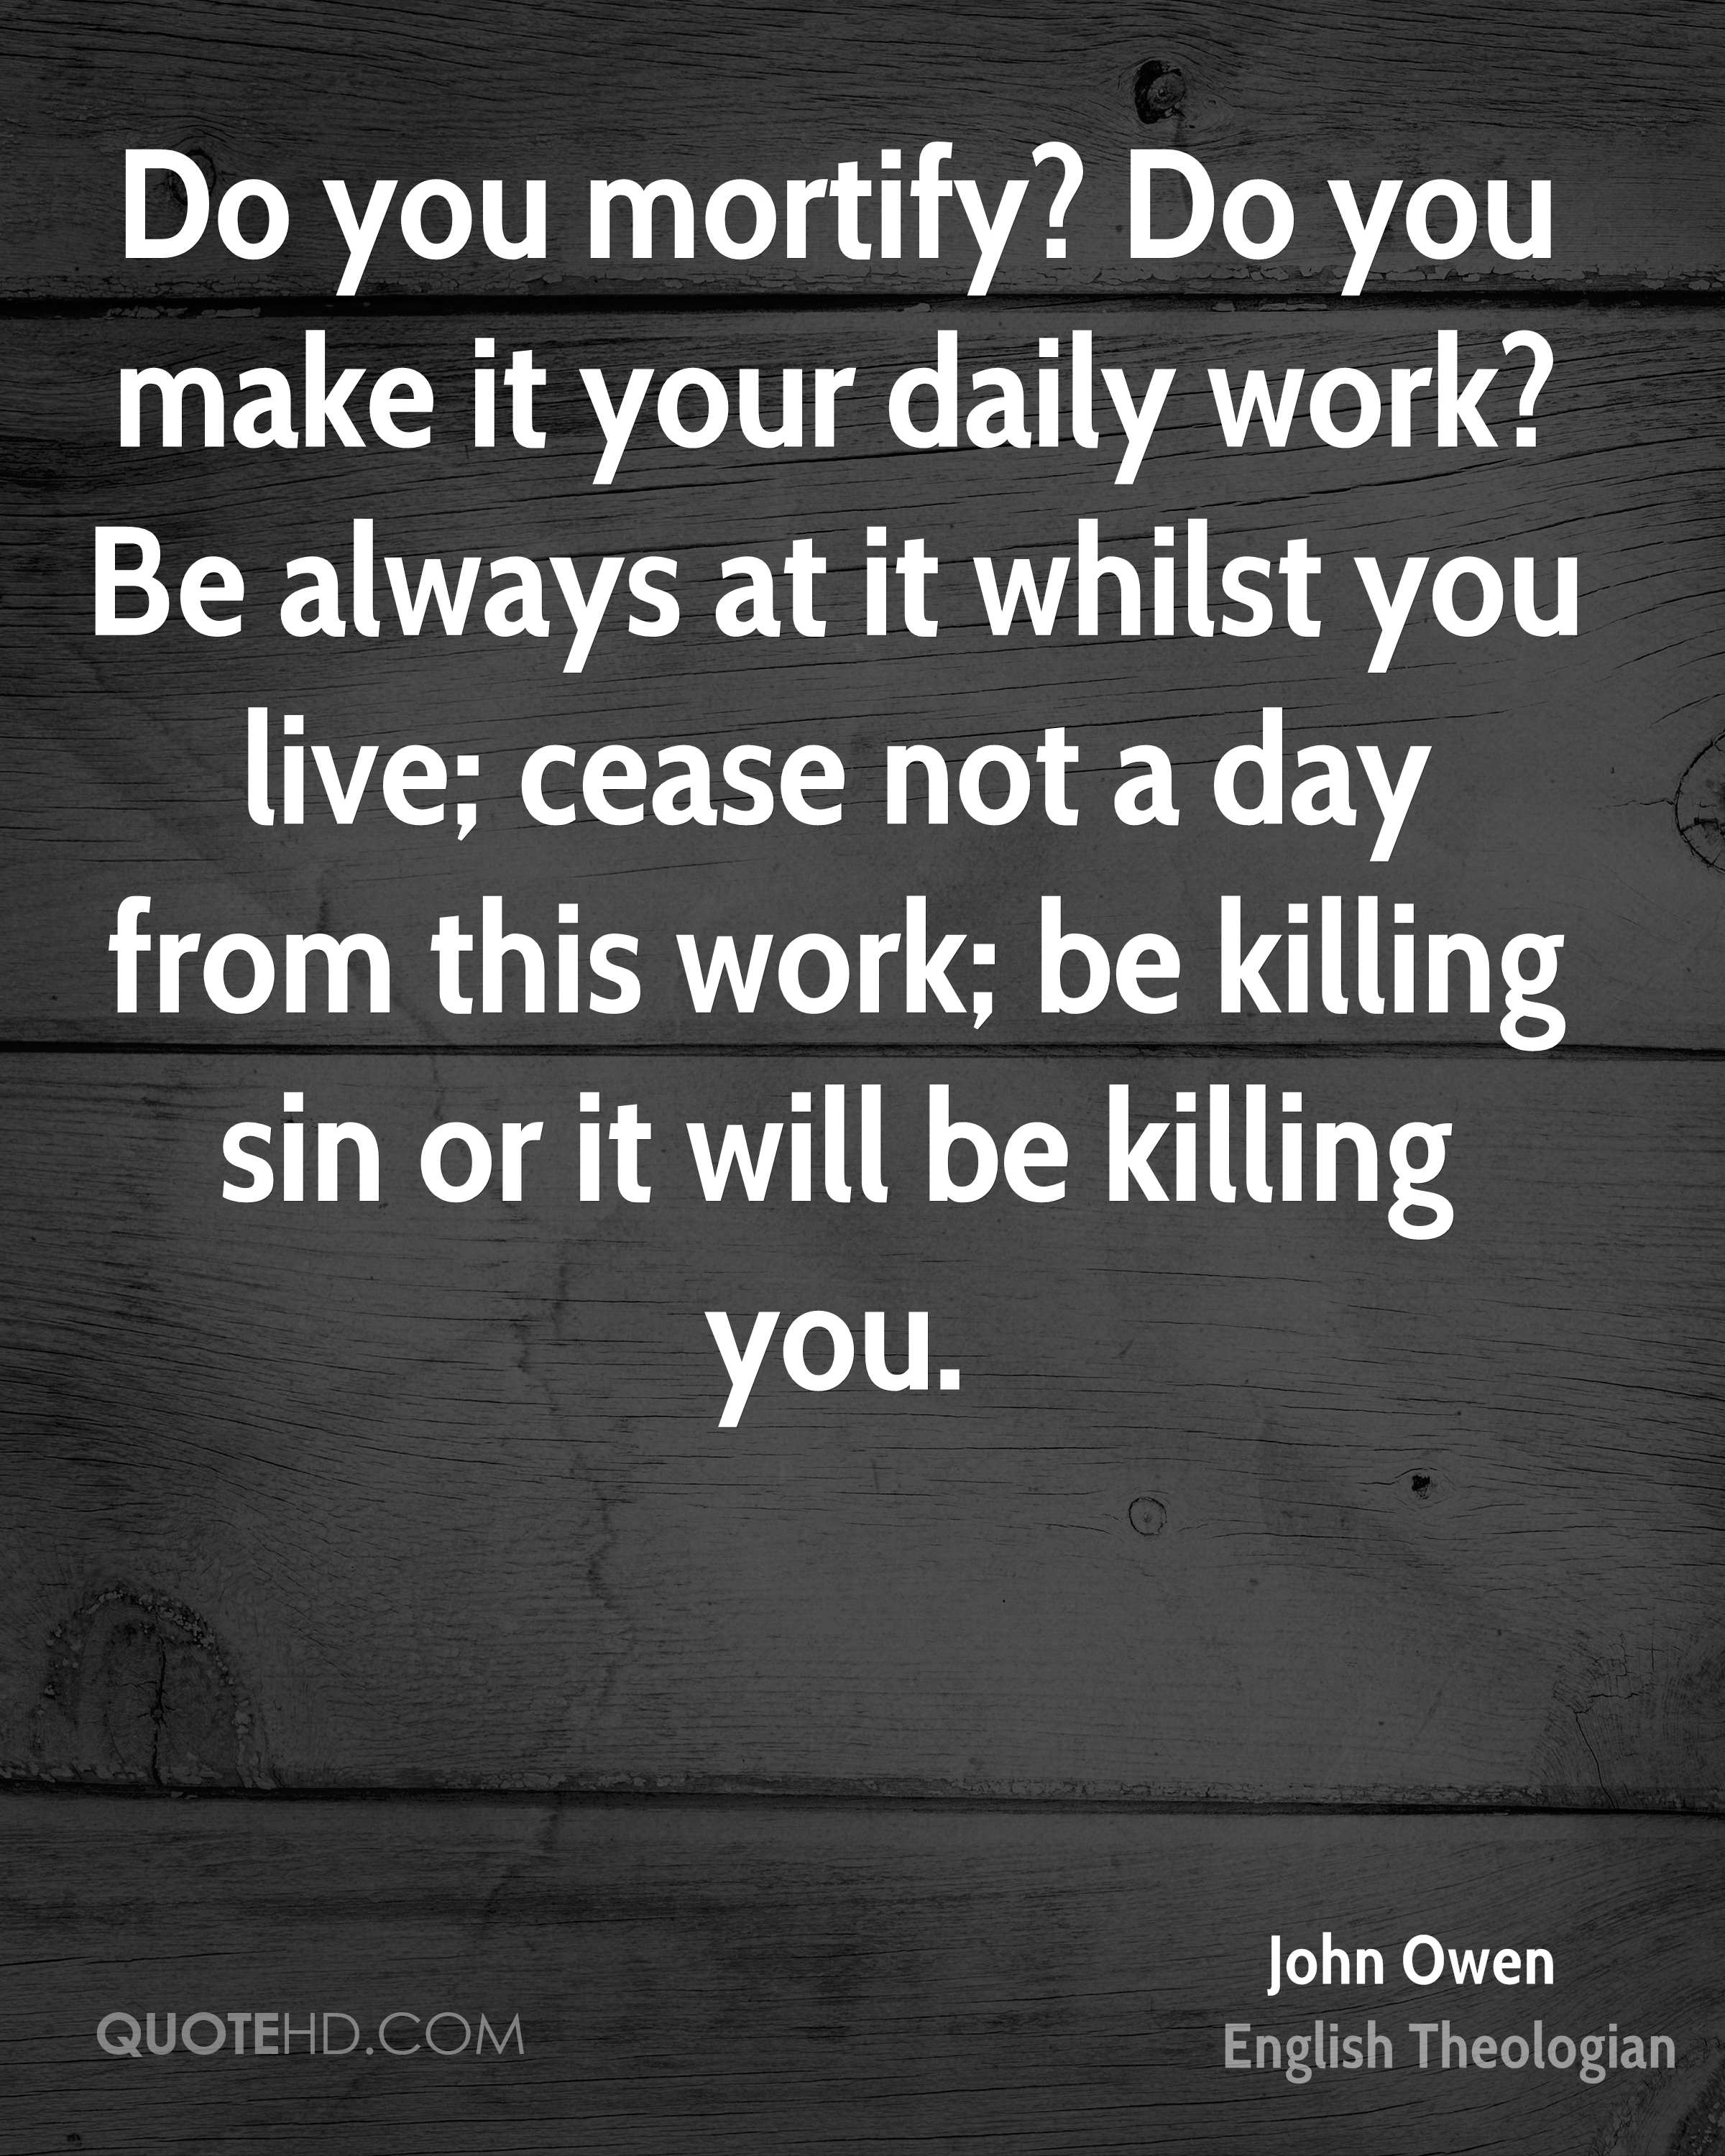 Do you mortify? Do you make it your daily work? Be always at it whilst you live; cease not a day from this work; be killing sin or it will be killing you.